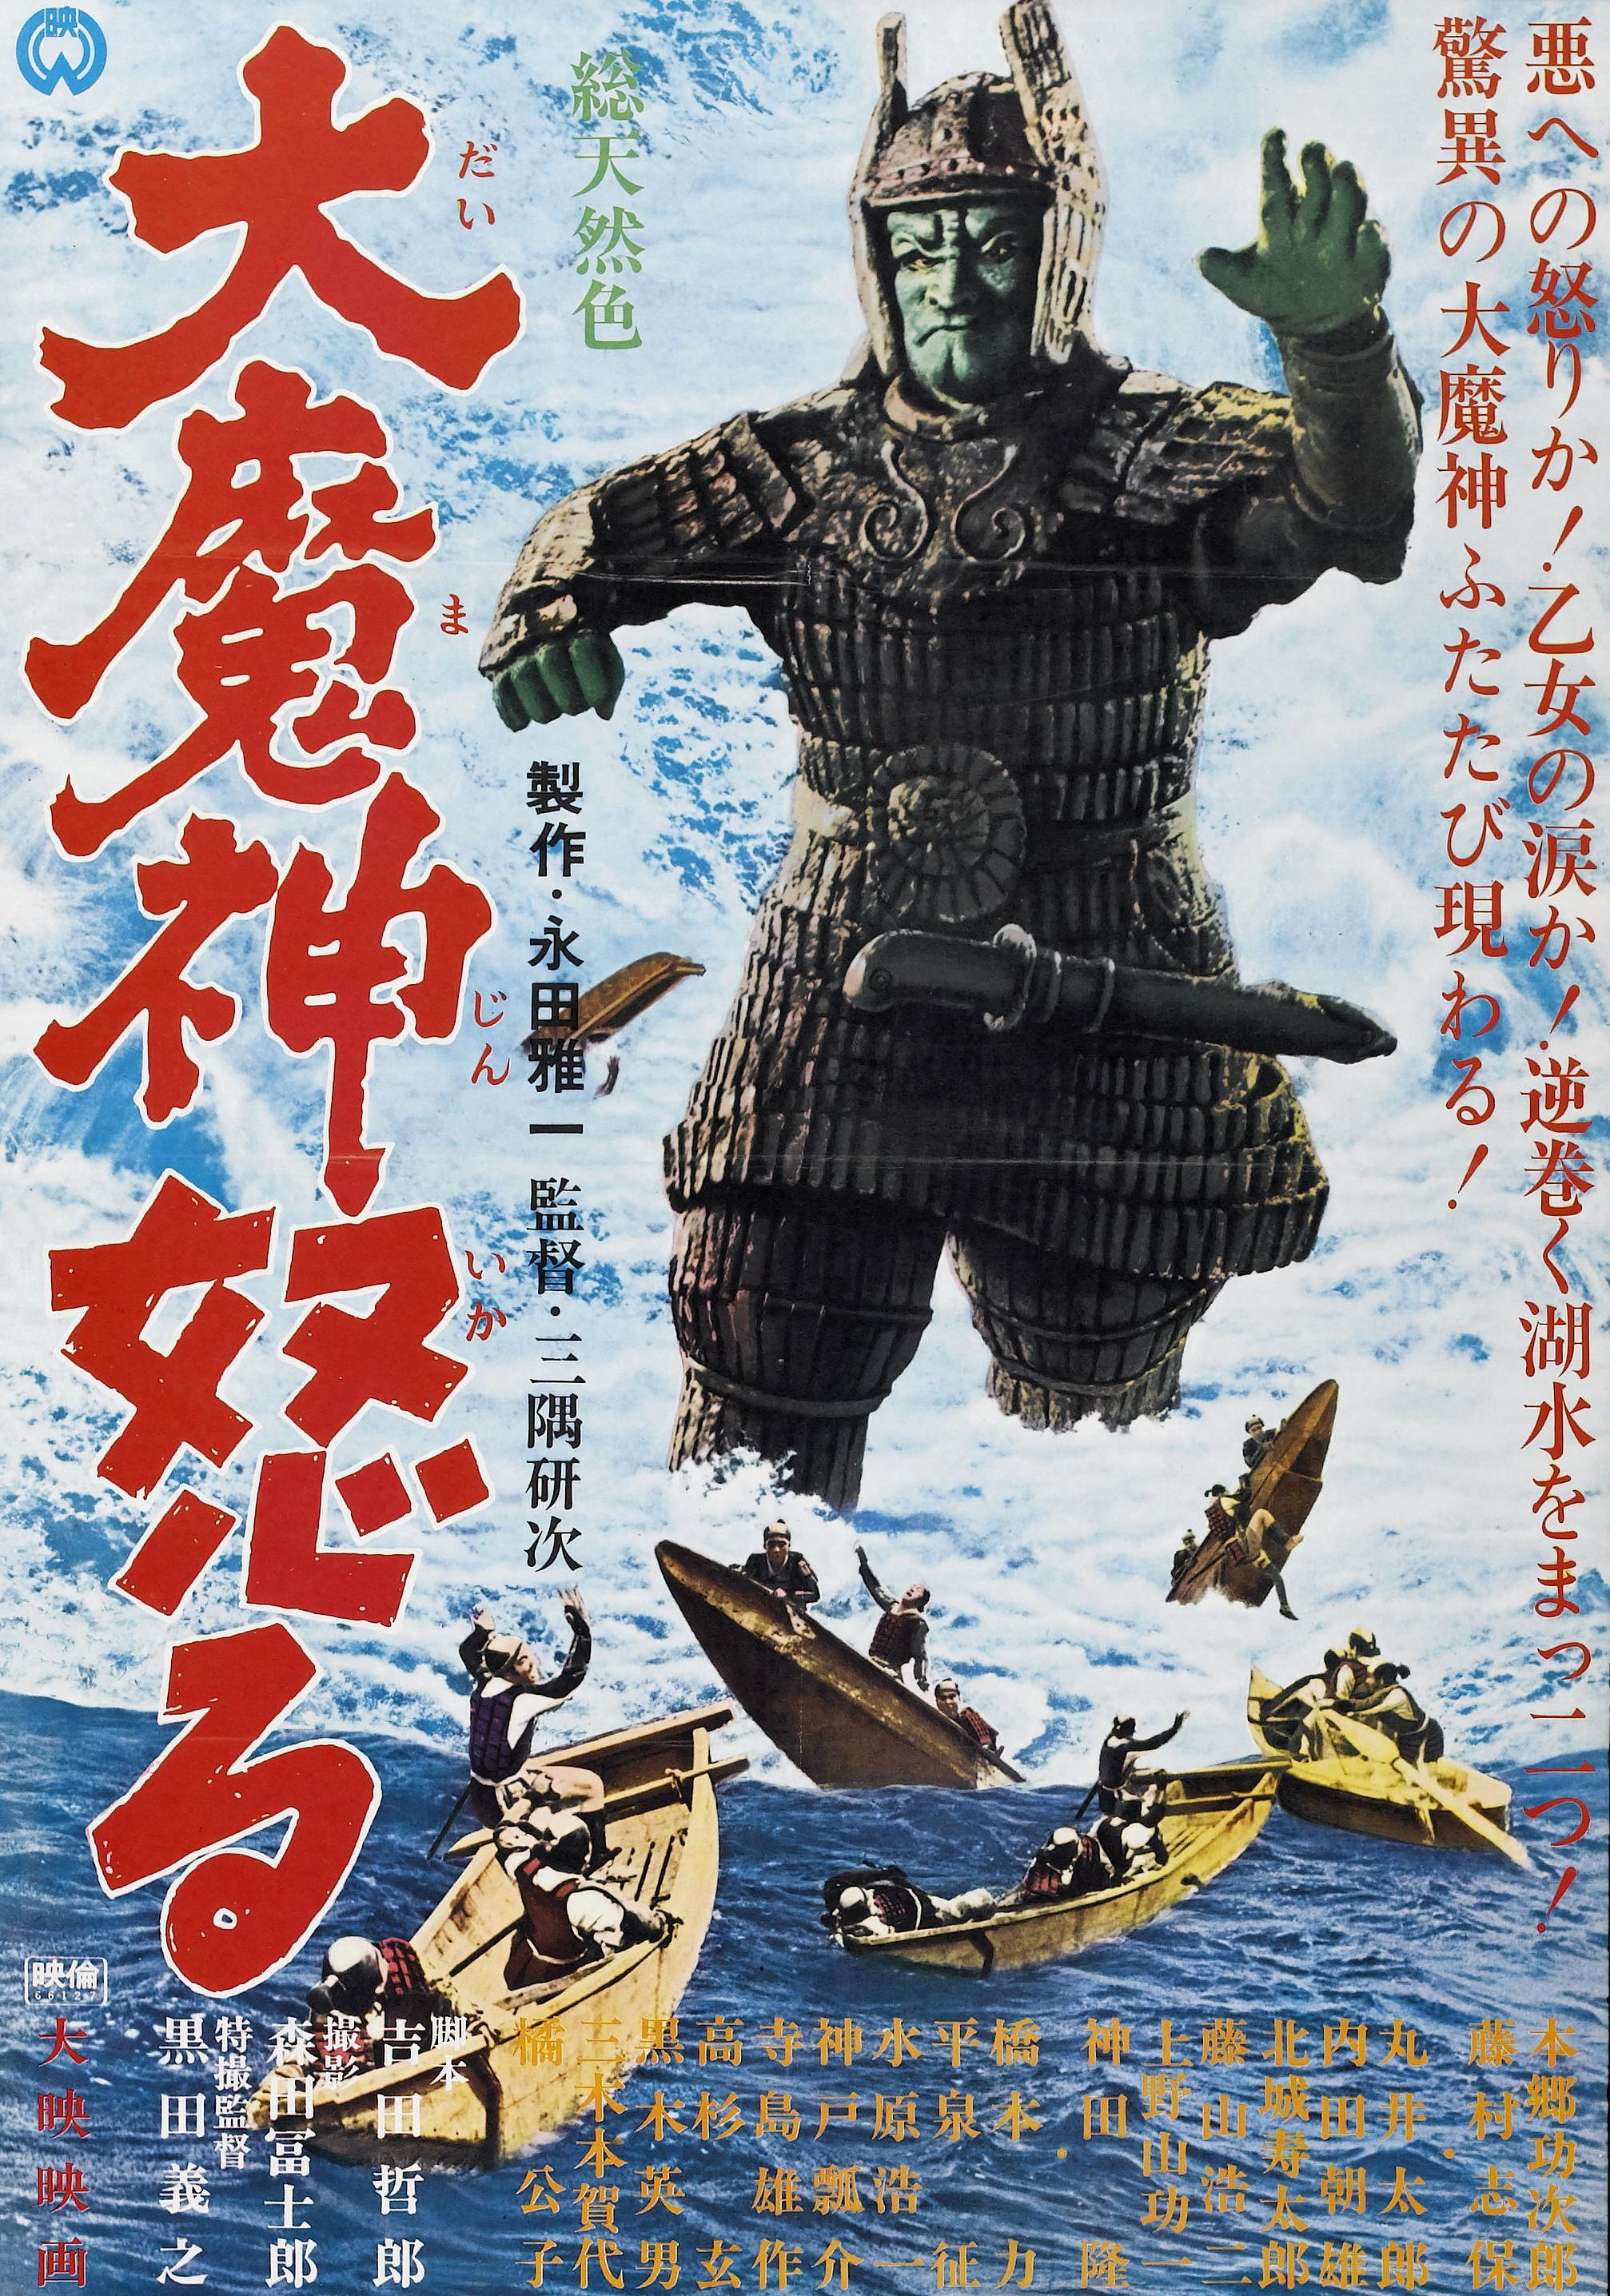 wrath_of_daimajin_poster_01